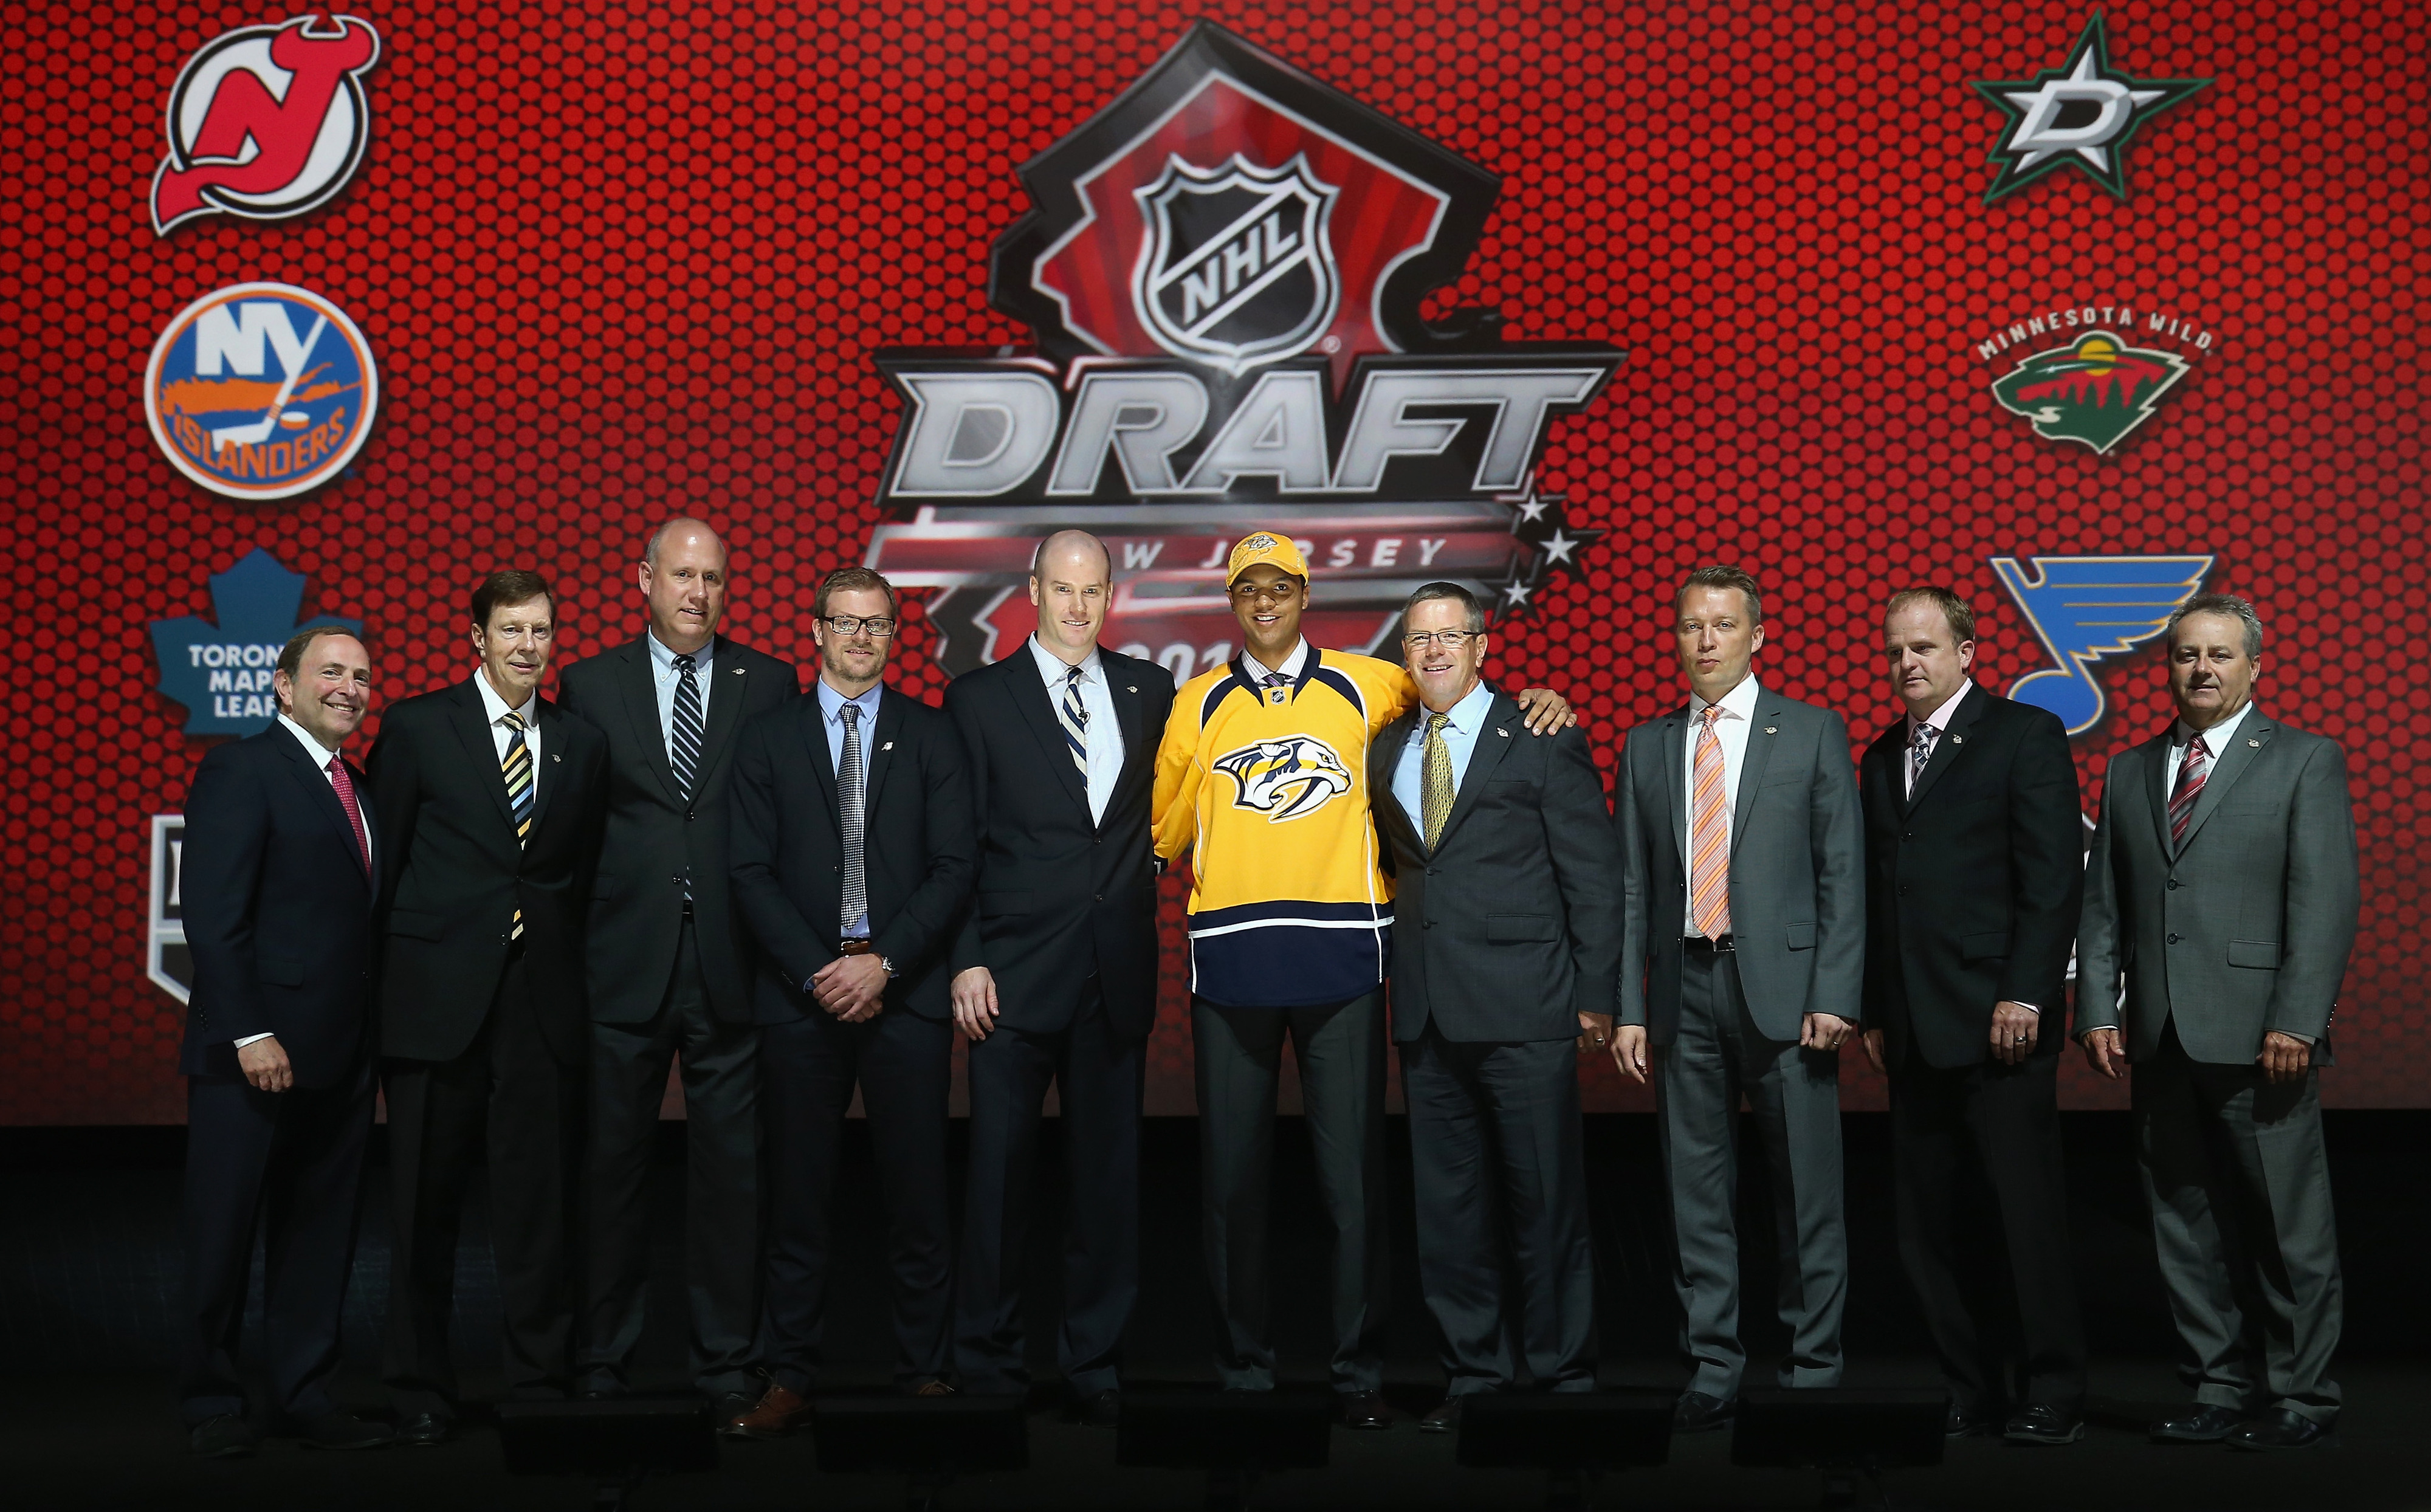 The Predators' staff couldn't have been happier to land their #1 player with the 4th overall pick.